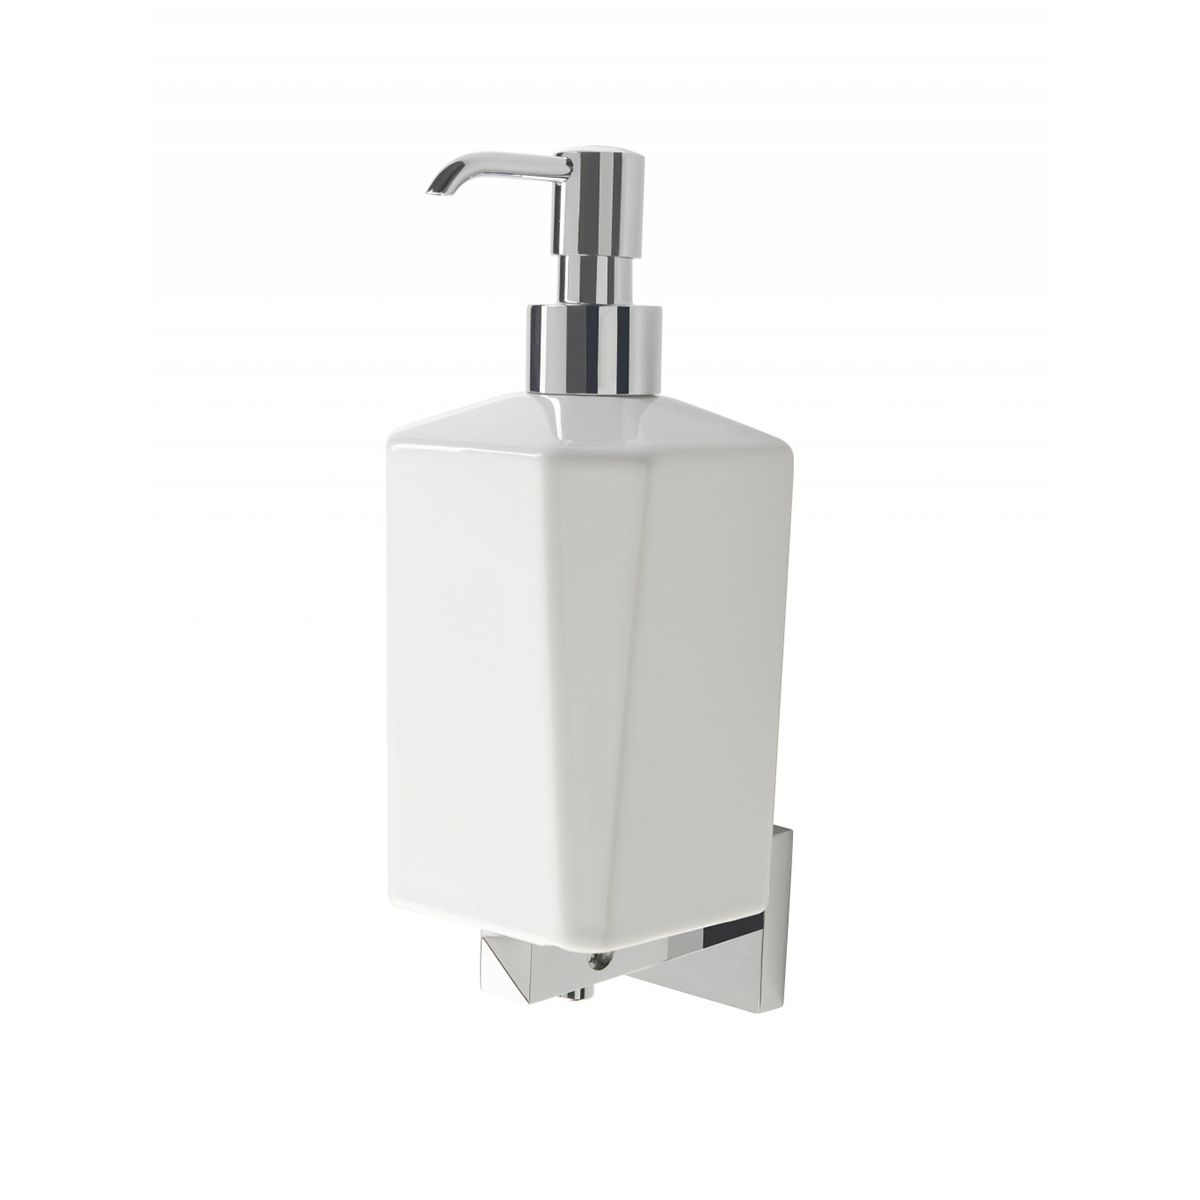 Bathrooms To Love Vitti Chrome and White Wall Mounted Soap Dispenser